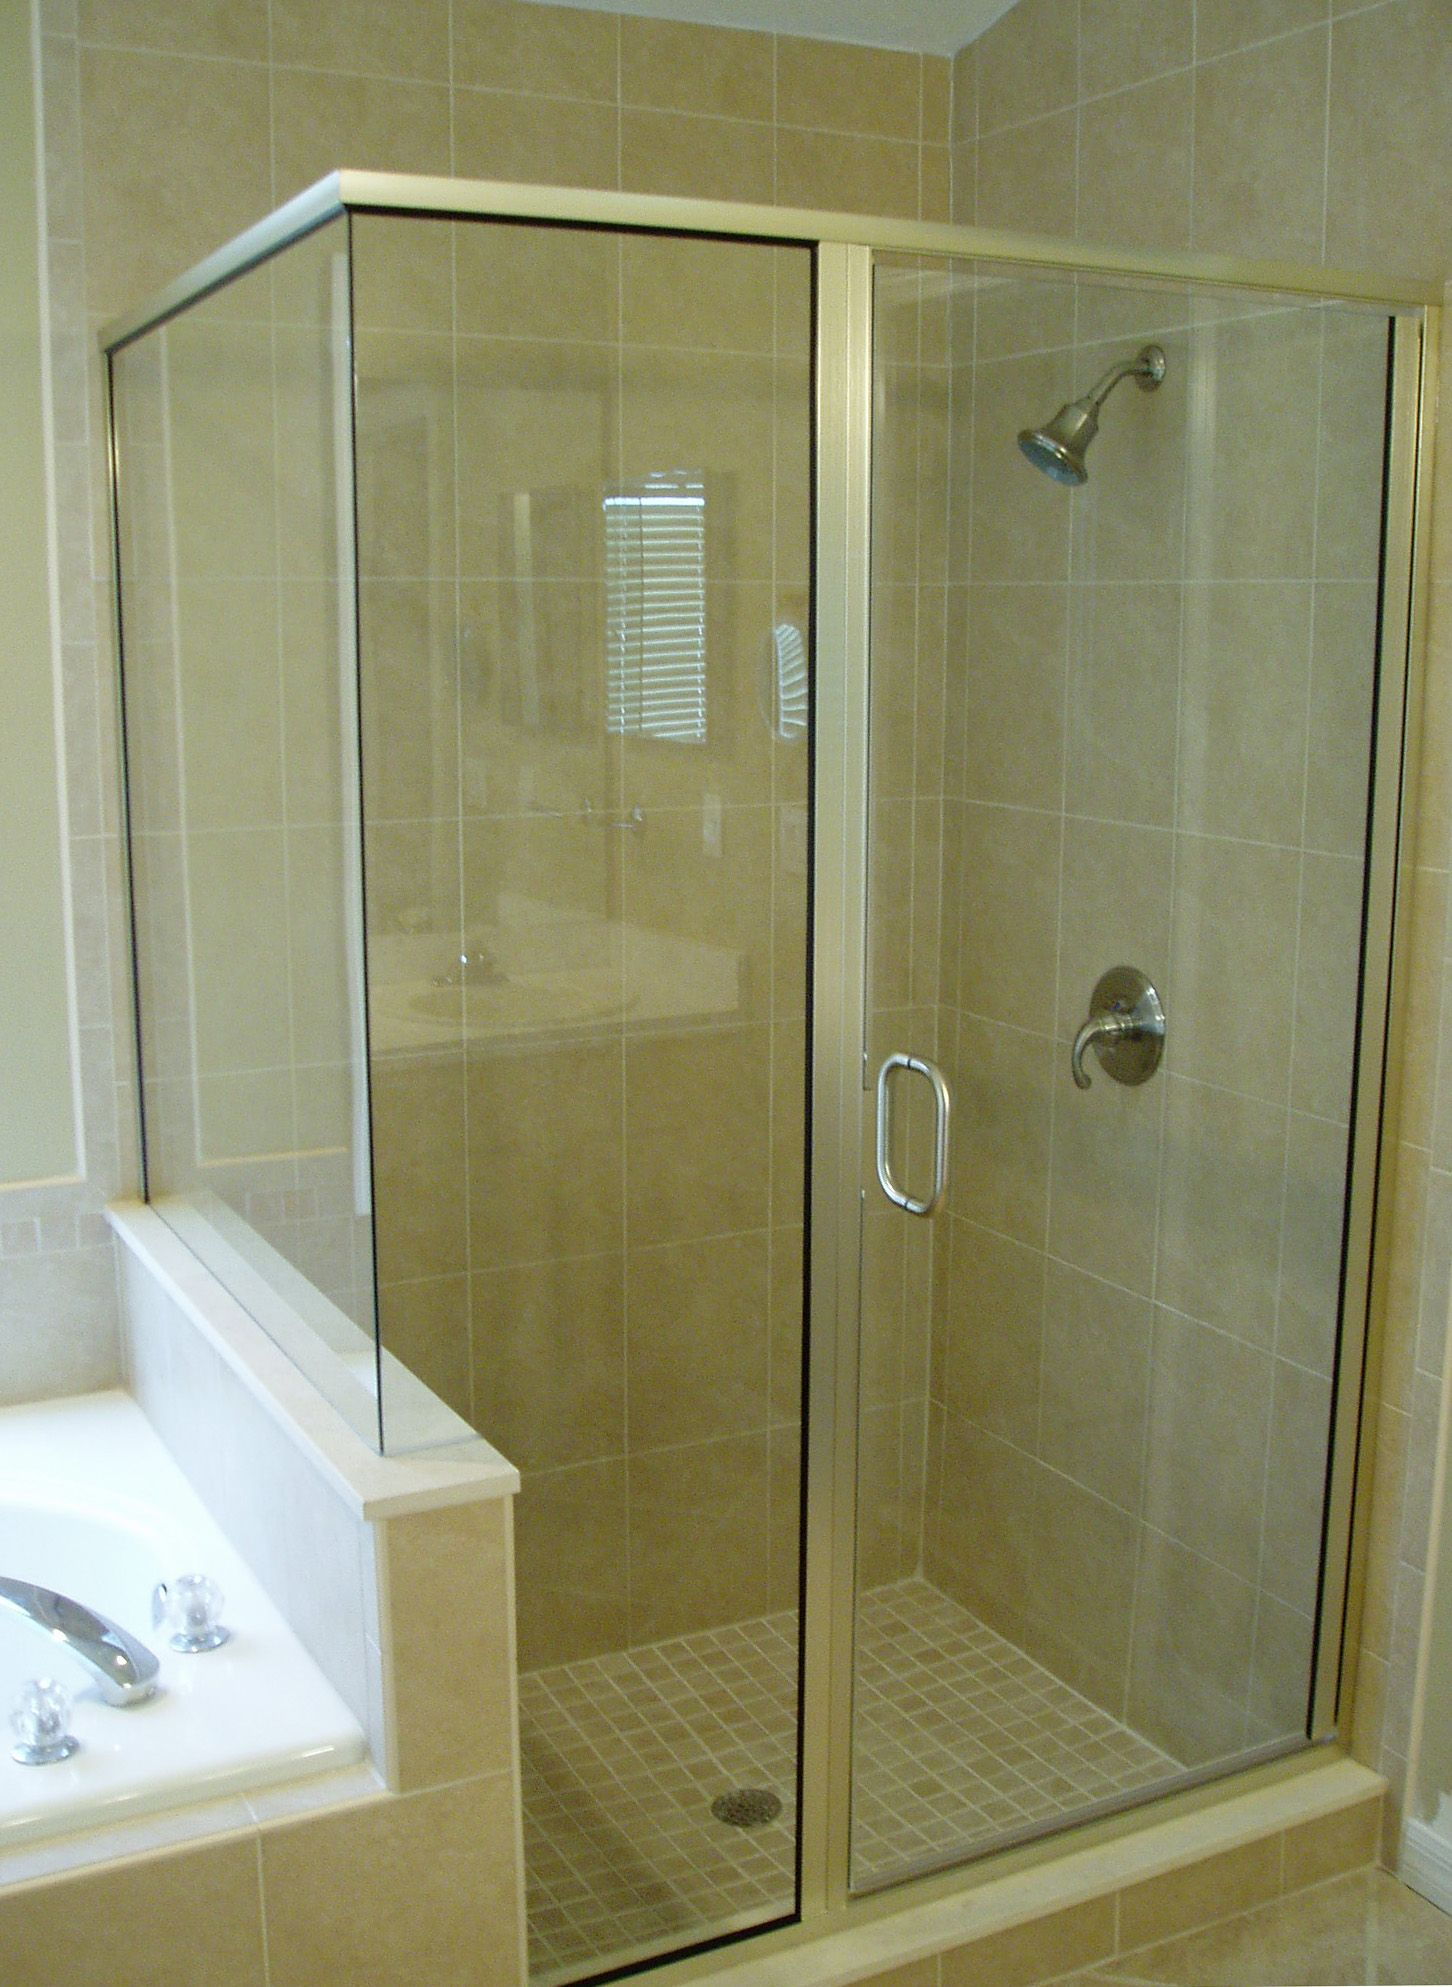 Semi Frameless Shower Enclosures a semi-frameless shower. notice no trim at the corner joint and